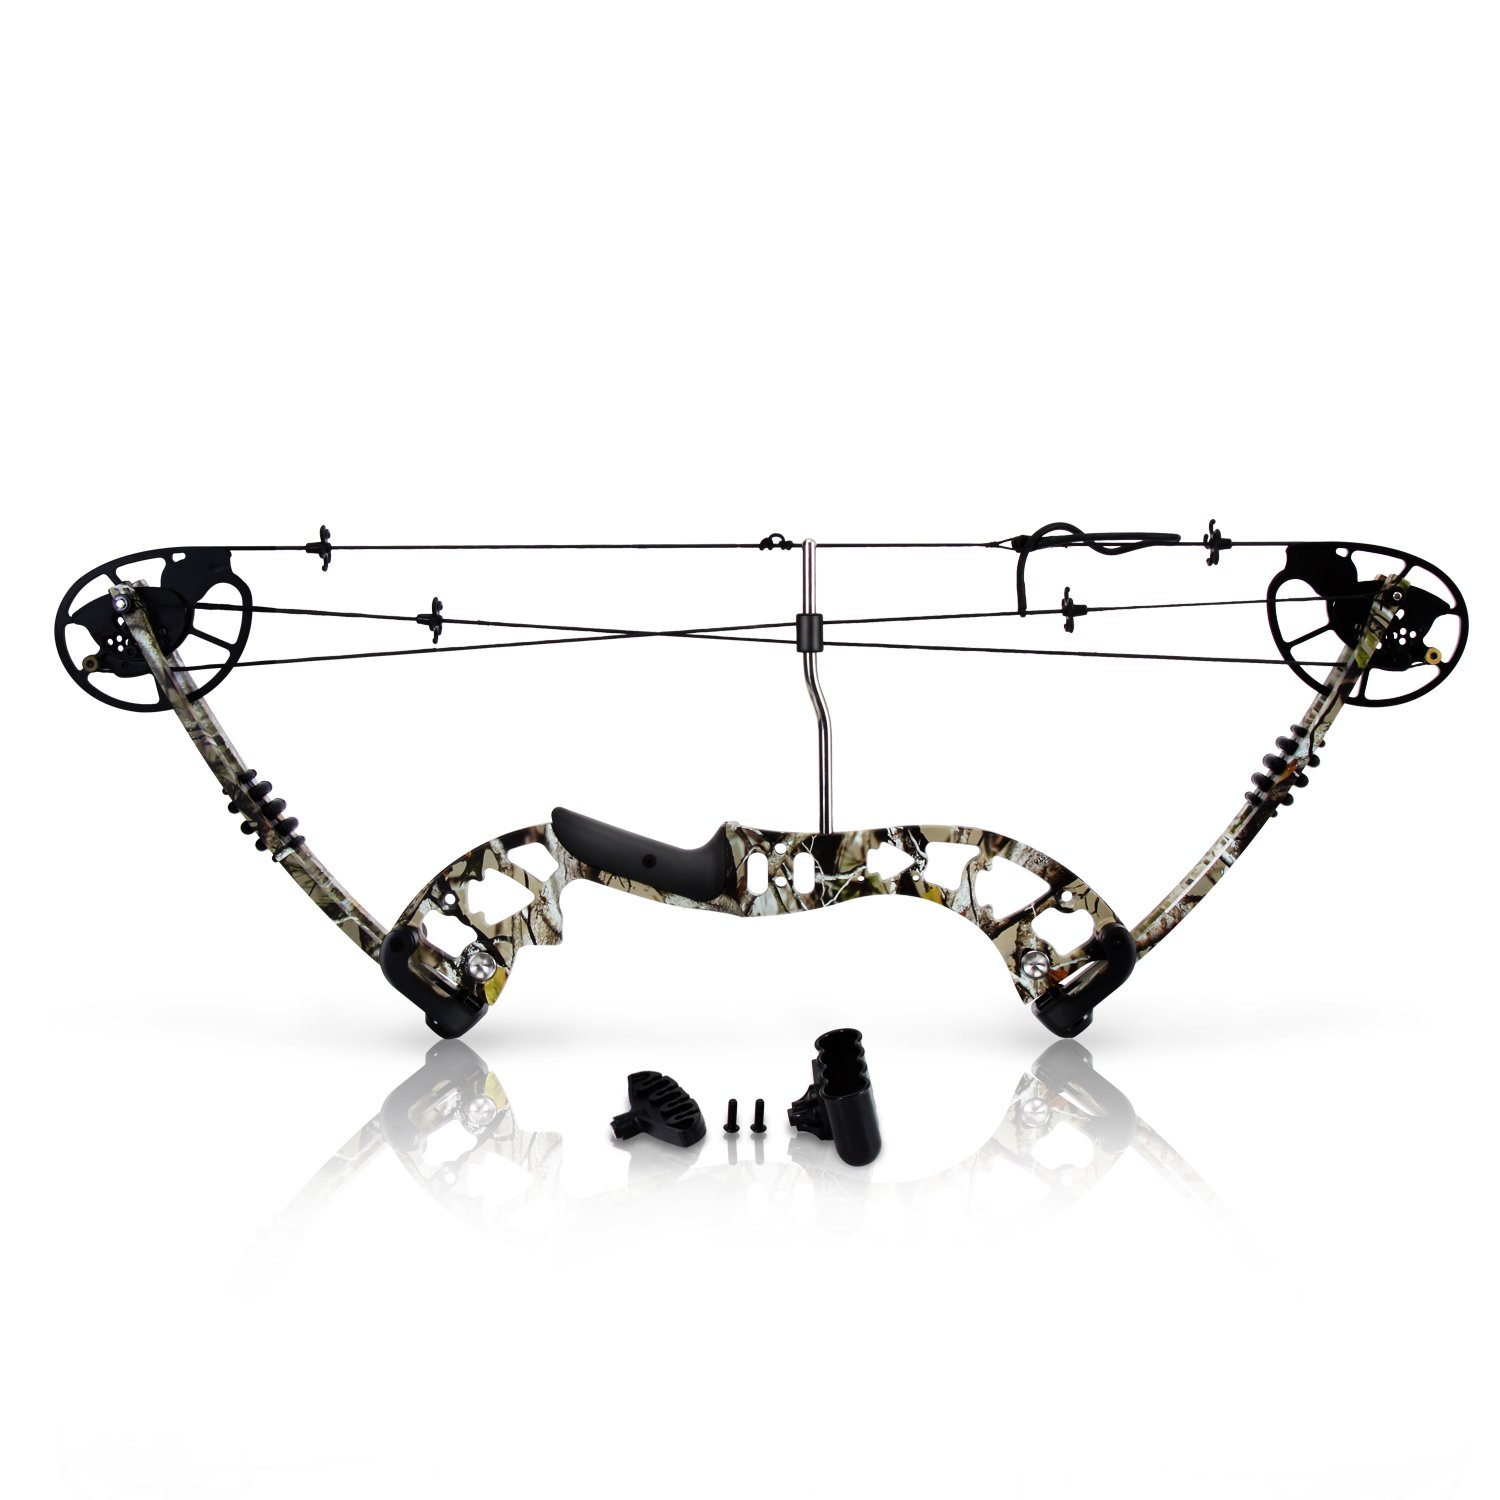 SereneLife Compound Bow, Adjustable Draw Weight 30-70 lbs with Max Speed 320 fps - Right Handed (SLCOMB10)